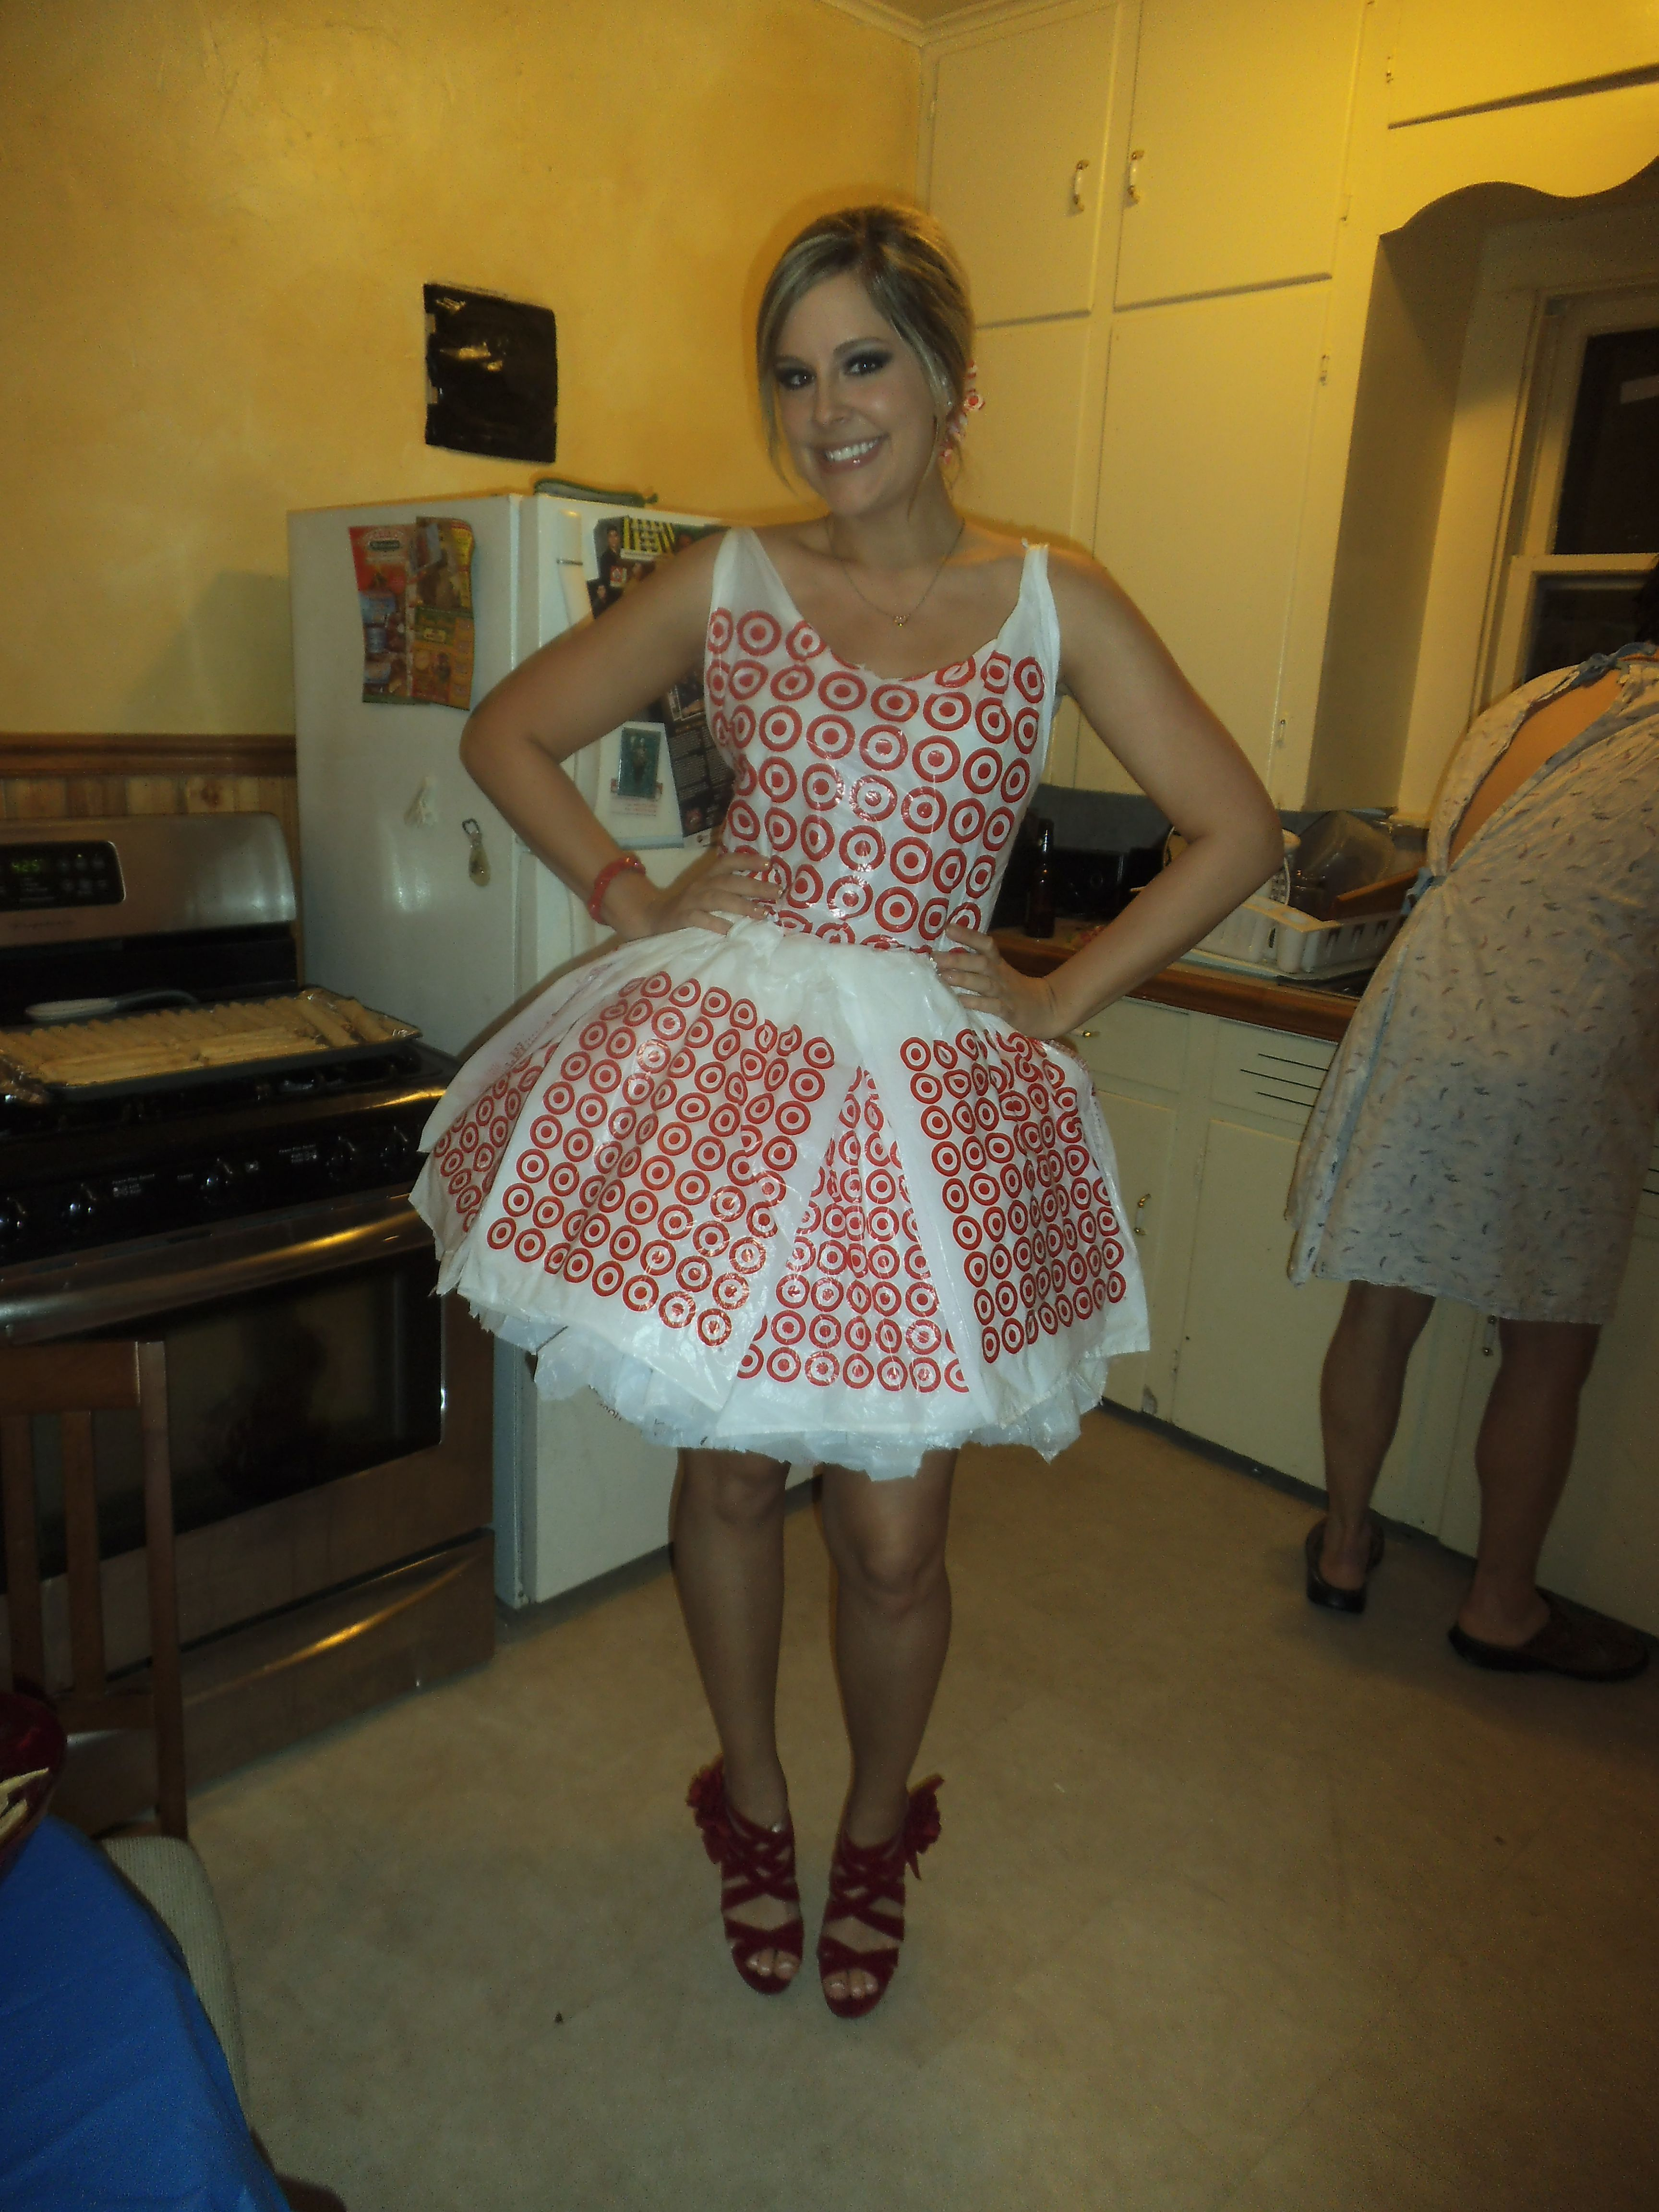 e83f302d74 dress i made entirely out of plastic bags for my abc bday party   fashiongiftideasmkbags